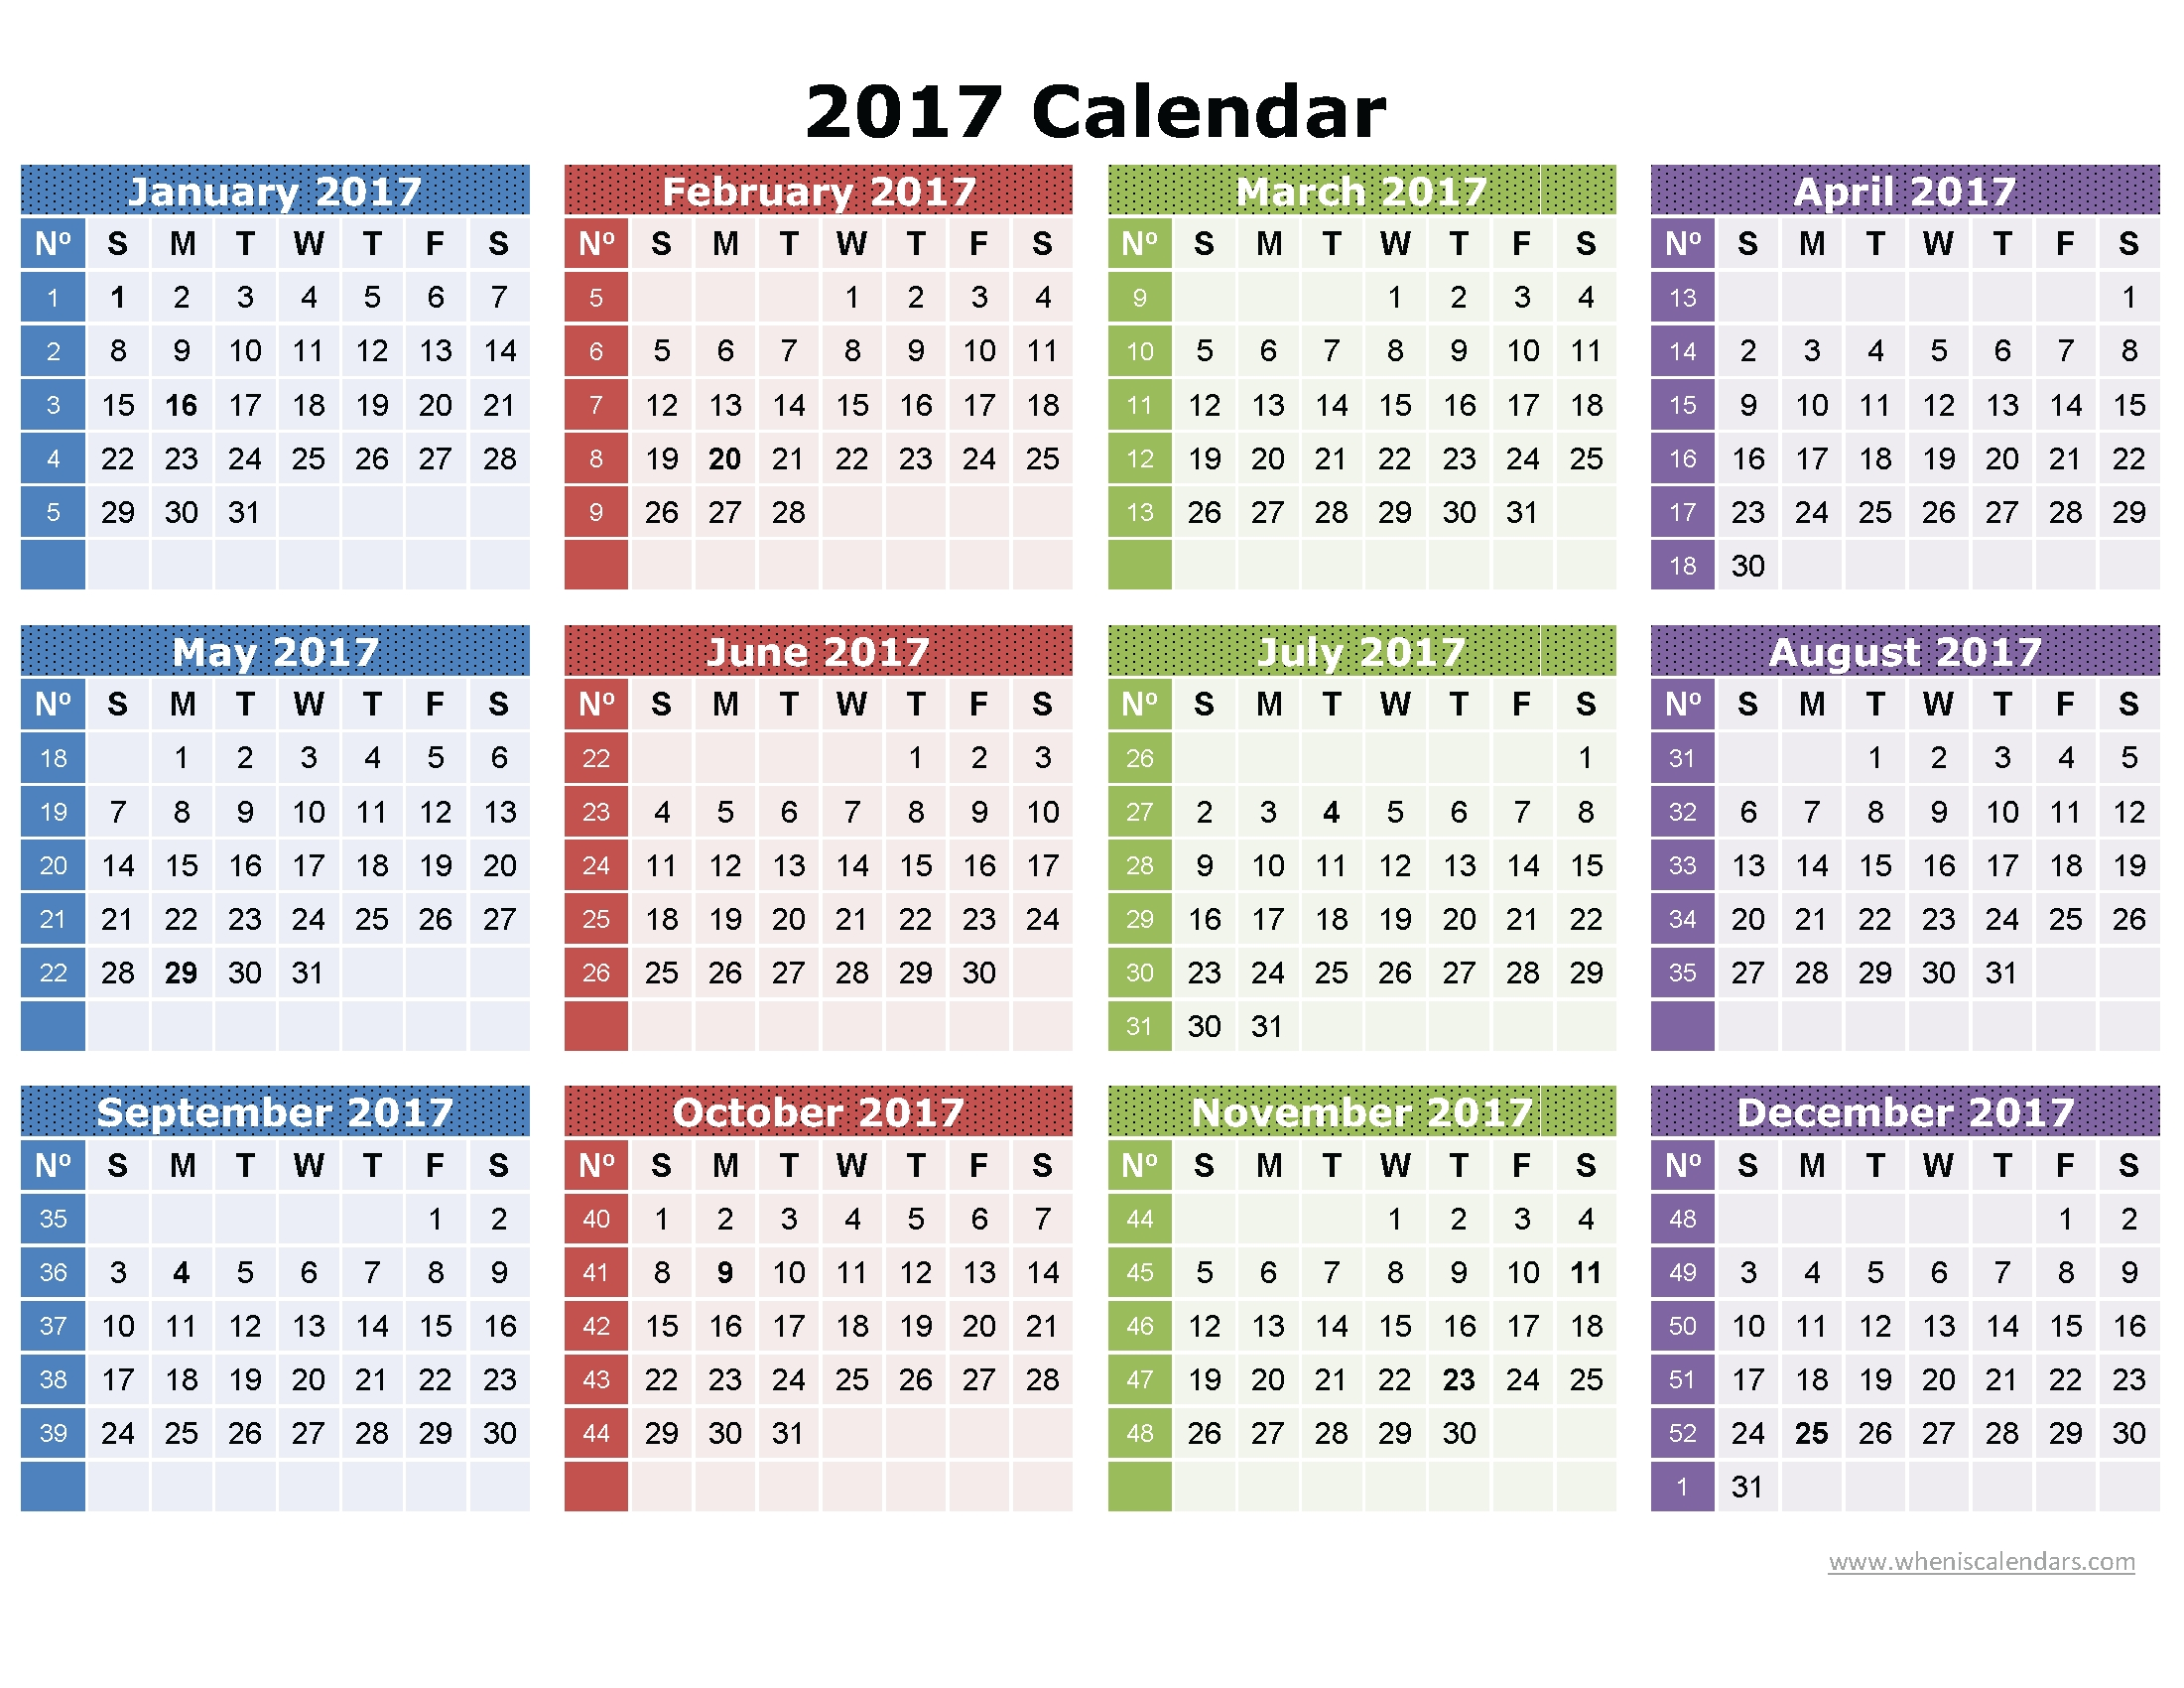 2017 Calendar Printable One Page | Download: Image (Full Size) | Pdf with Printable Full Size Blank Calendar